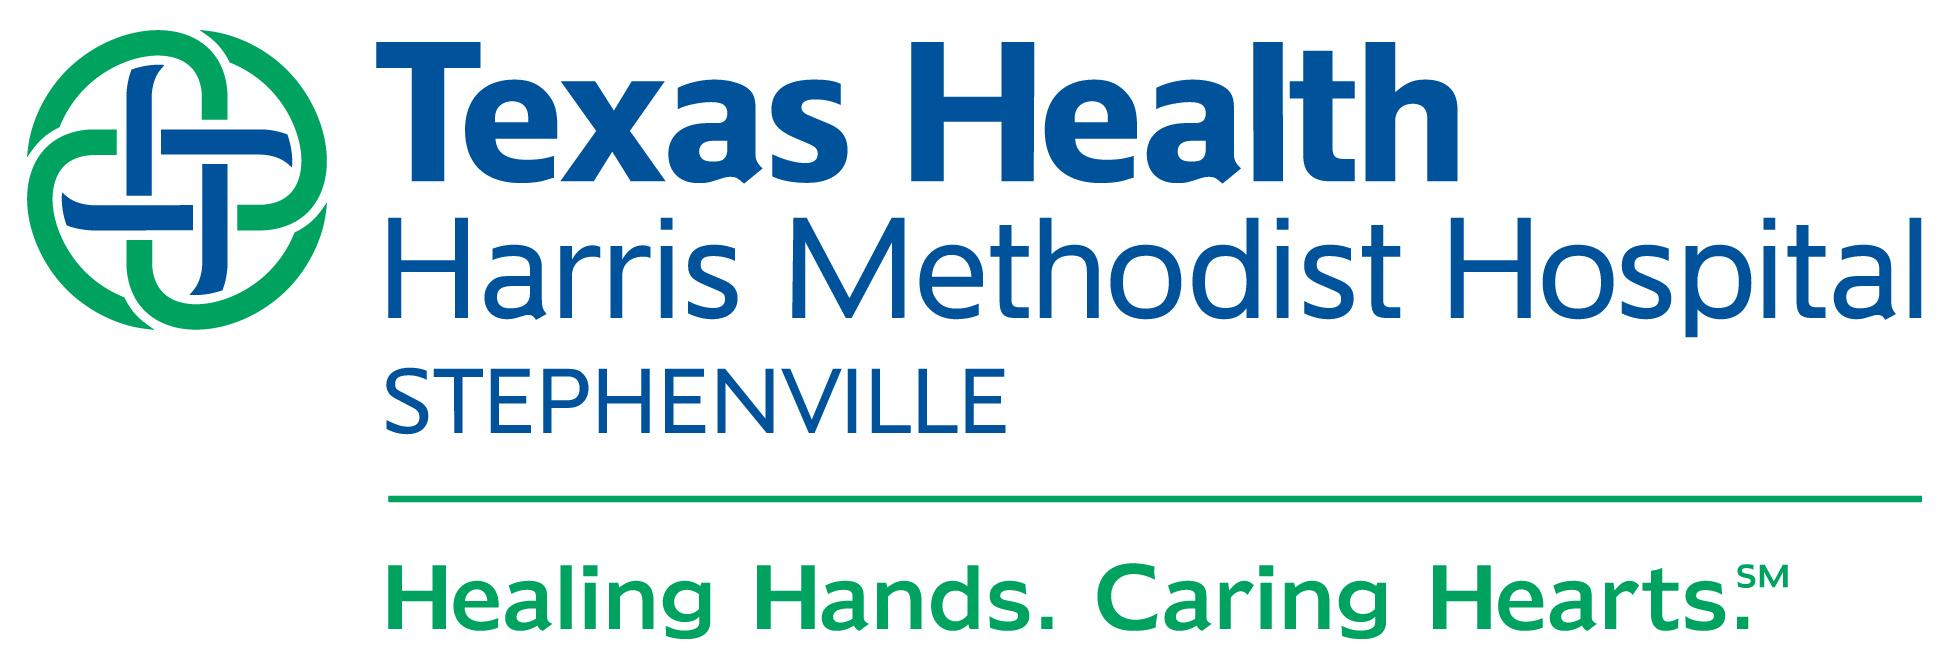 Pediatrician needed in Stephenville, Texas - Texas Health Harris Methodist Stephenville